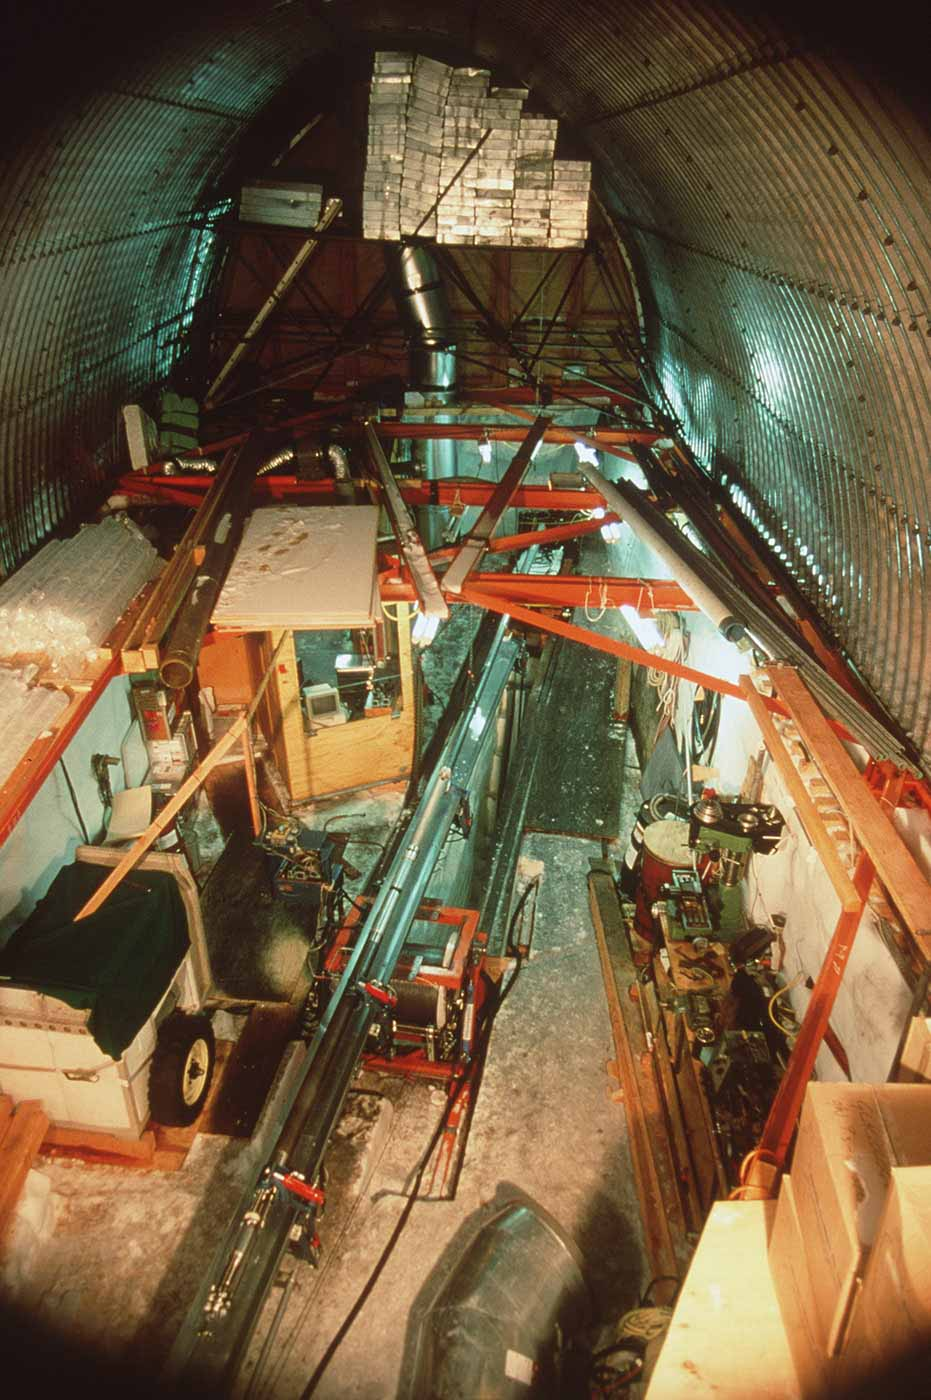 Construction site in a tunnel containing machinery and equipment. - click to view larger image